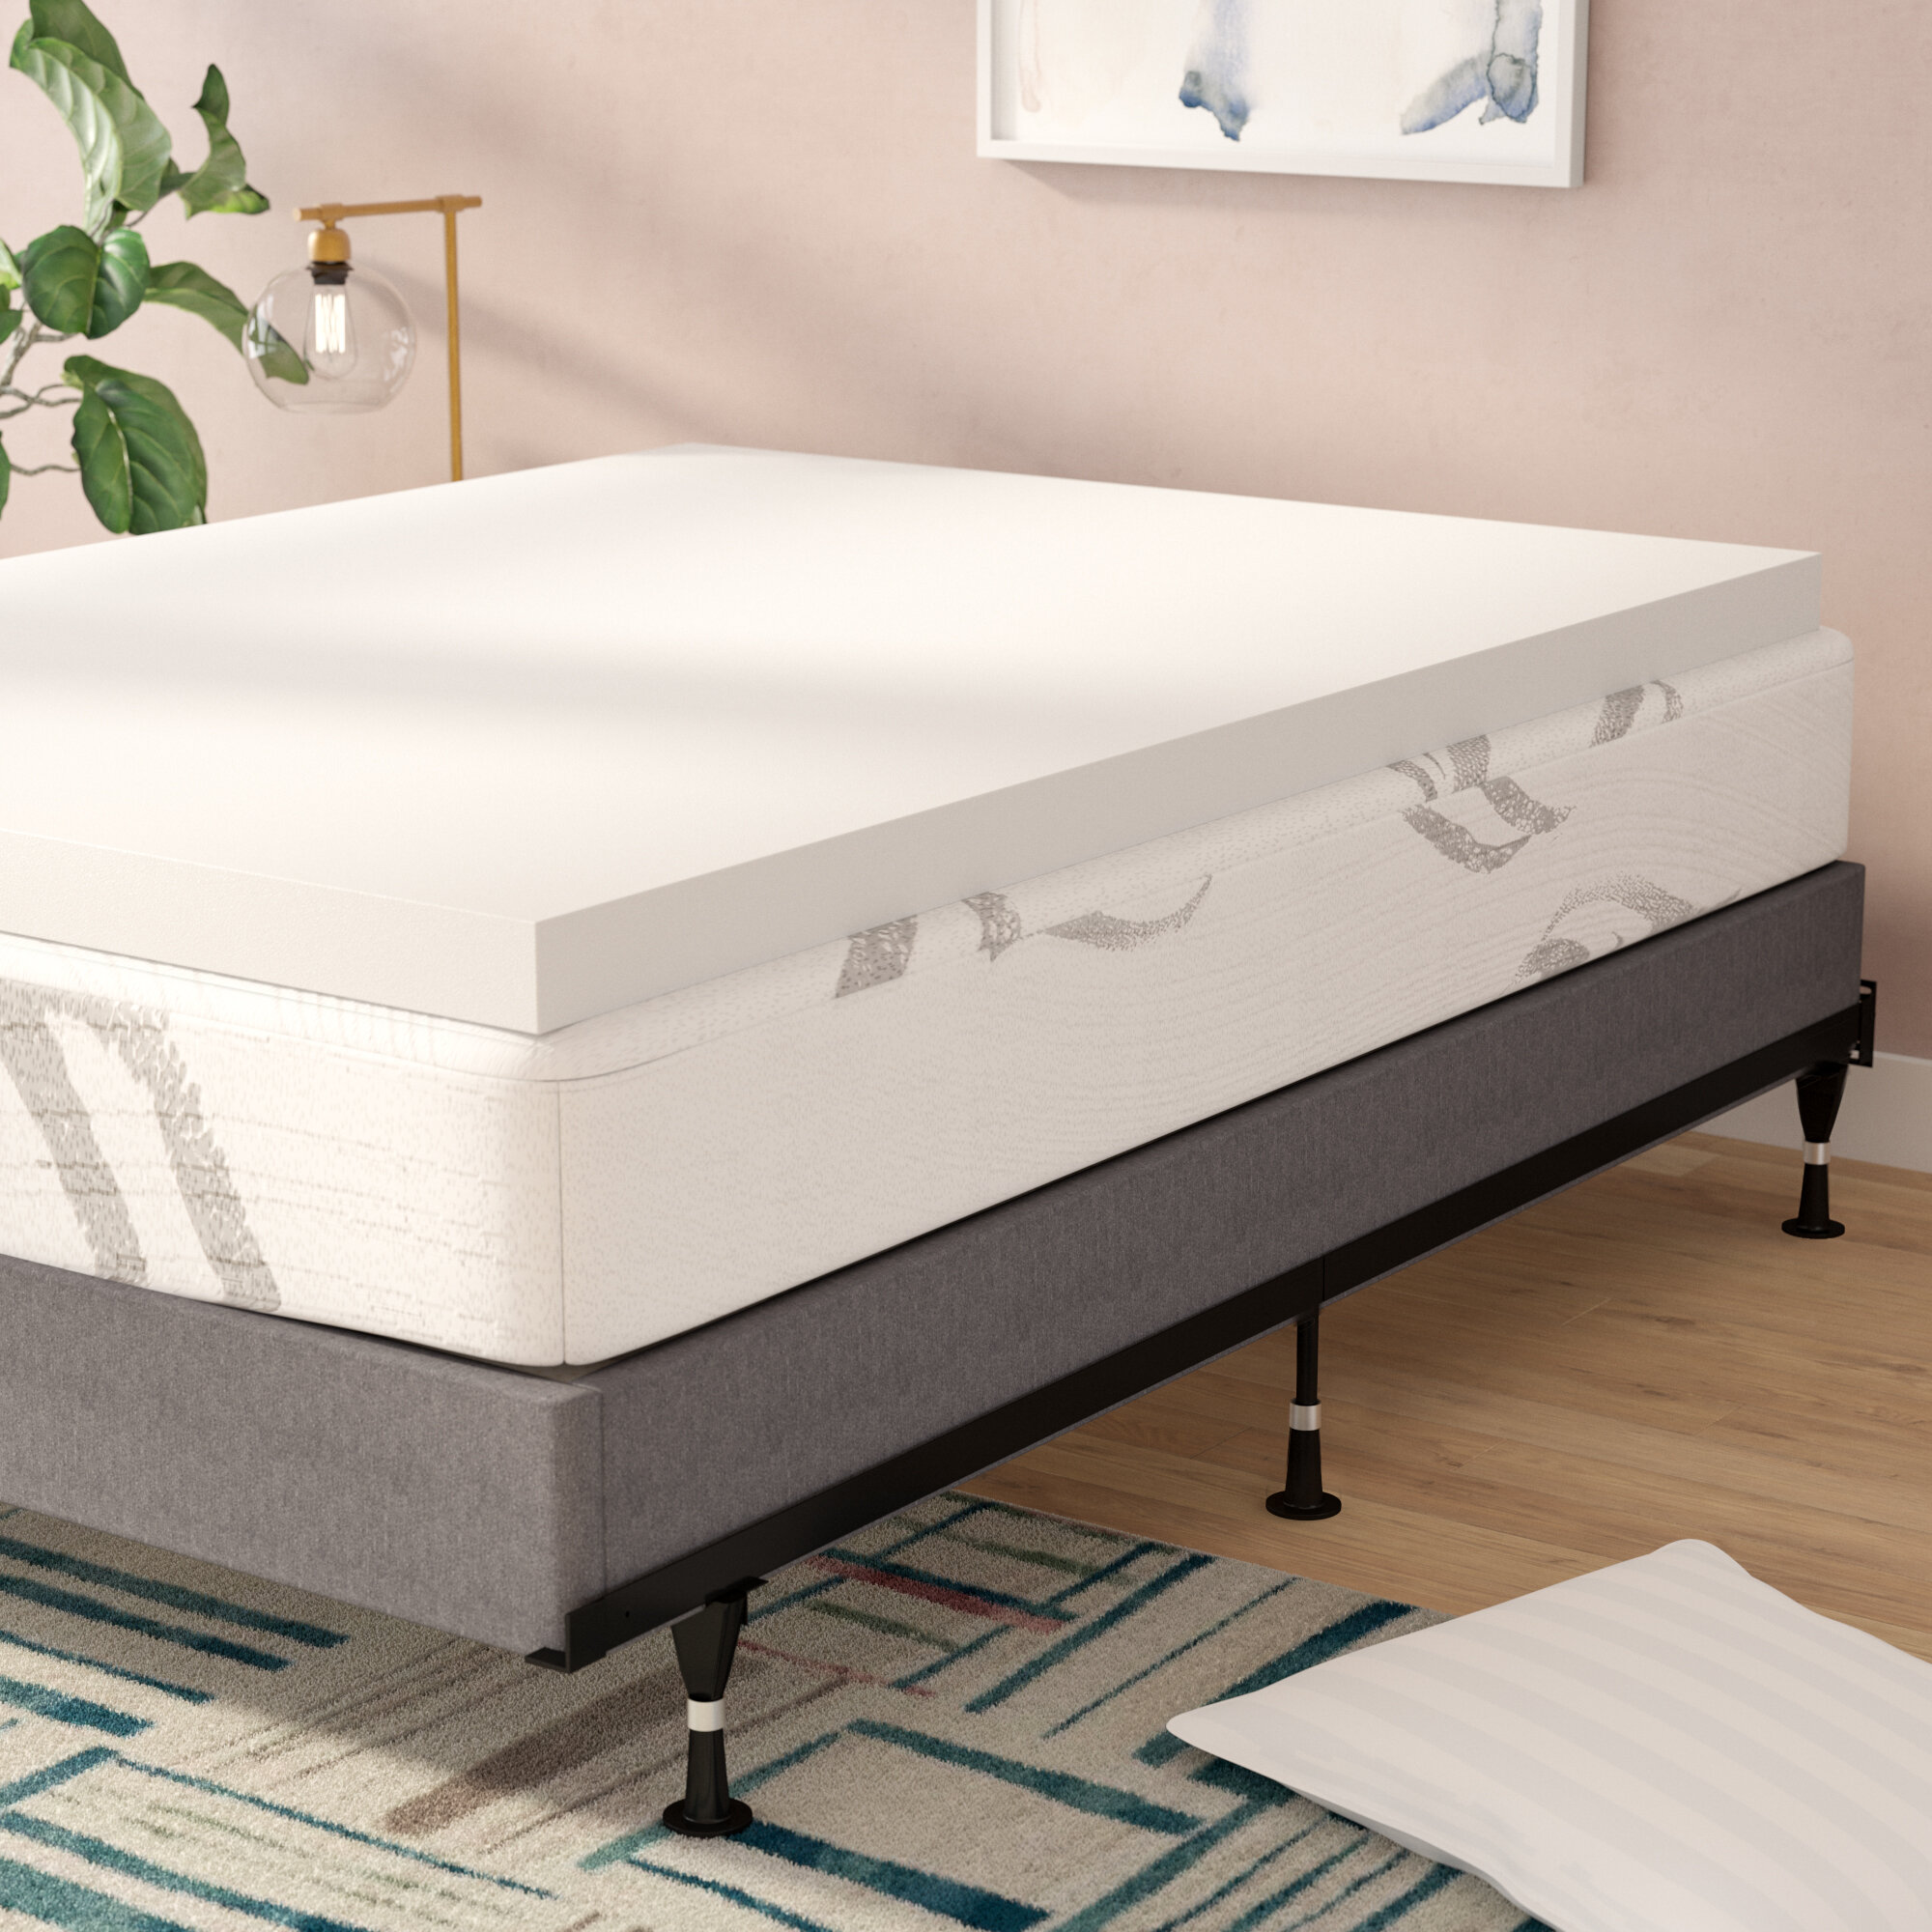 crate best foam topper ventilated mattress home reviewed memory pad top for toppers egg everyday